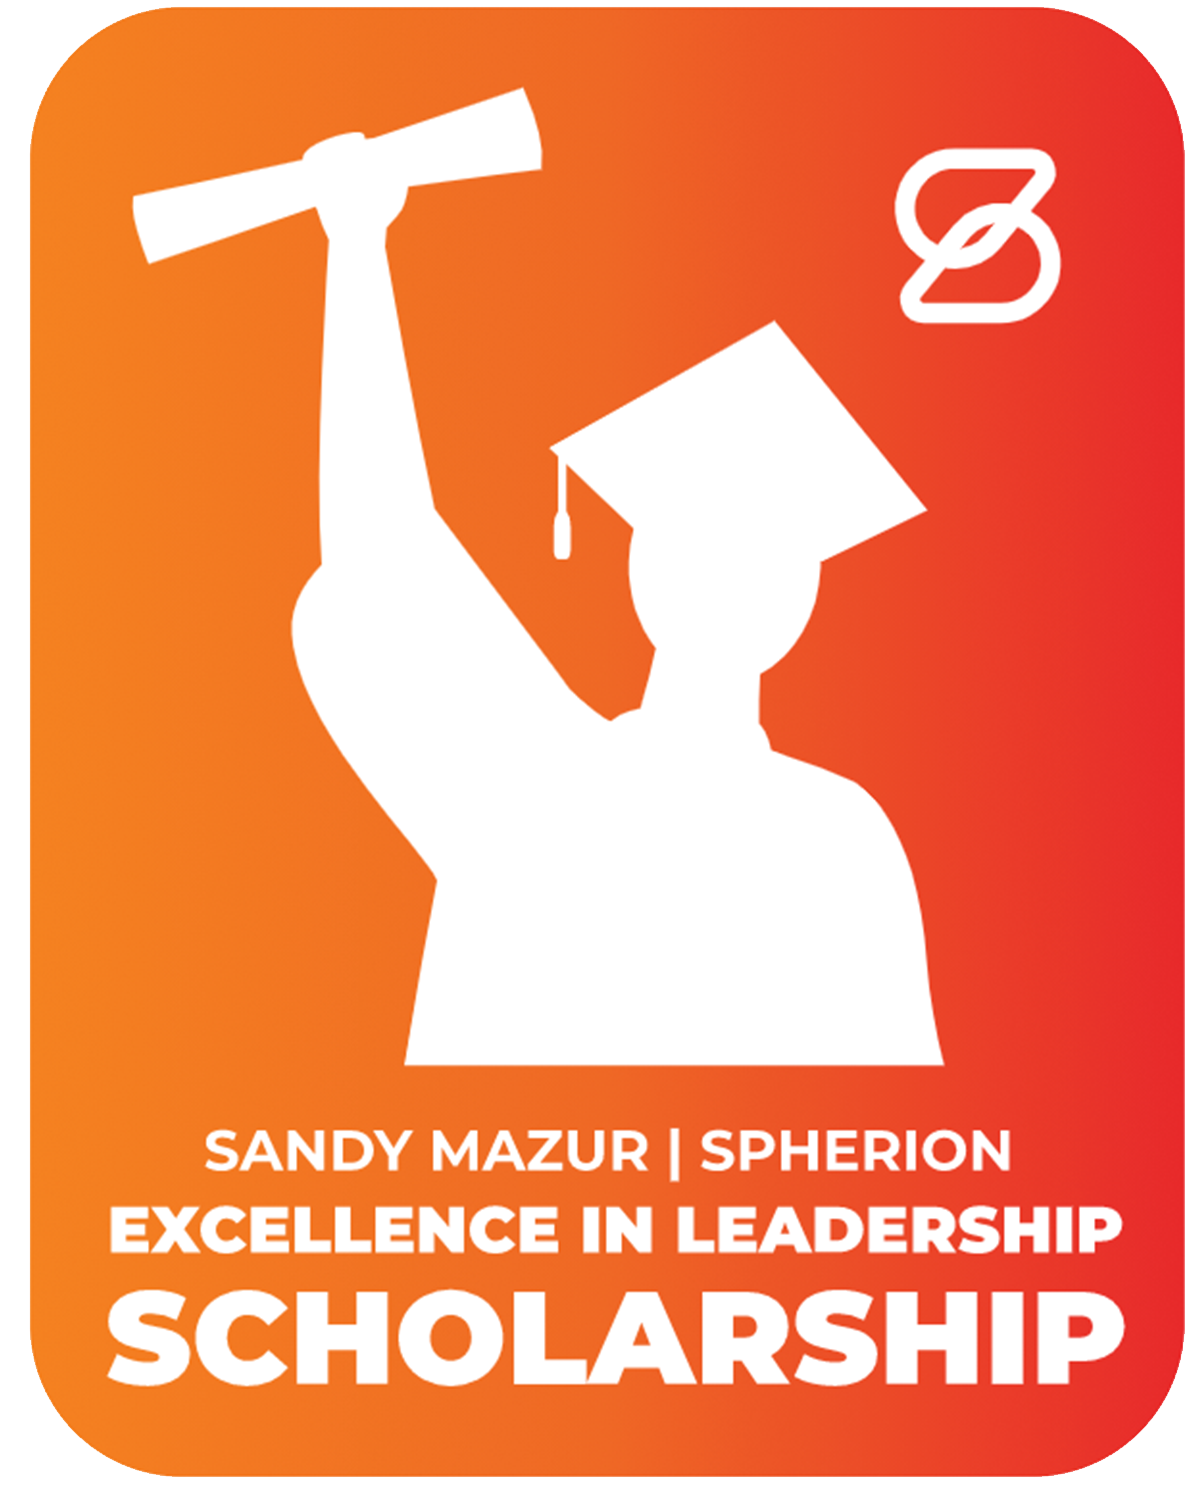 EXCELLENCE IN LEADERSHIP SCHOLARSHIP